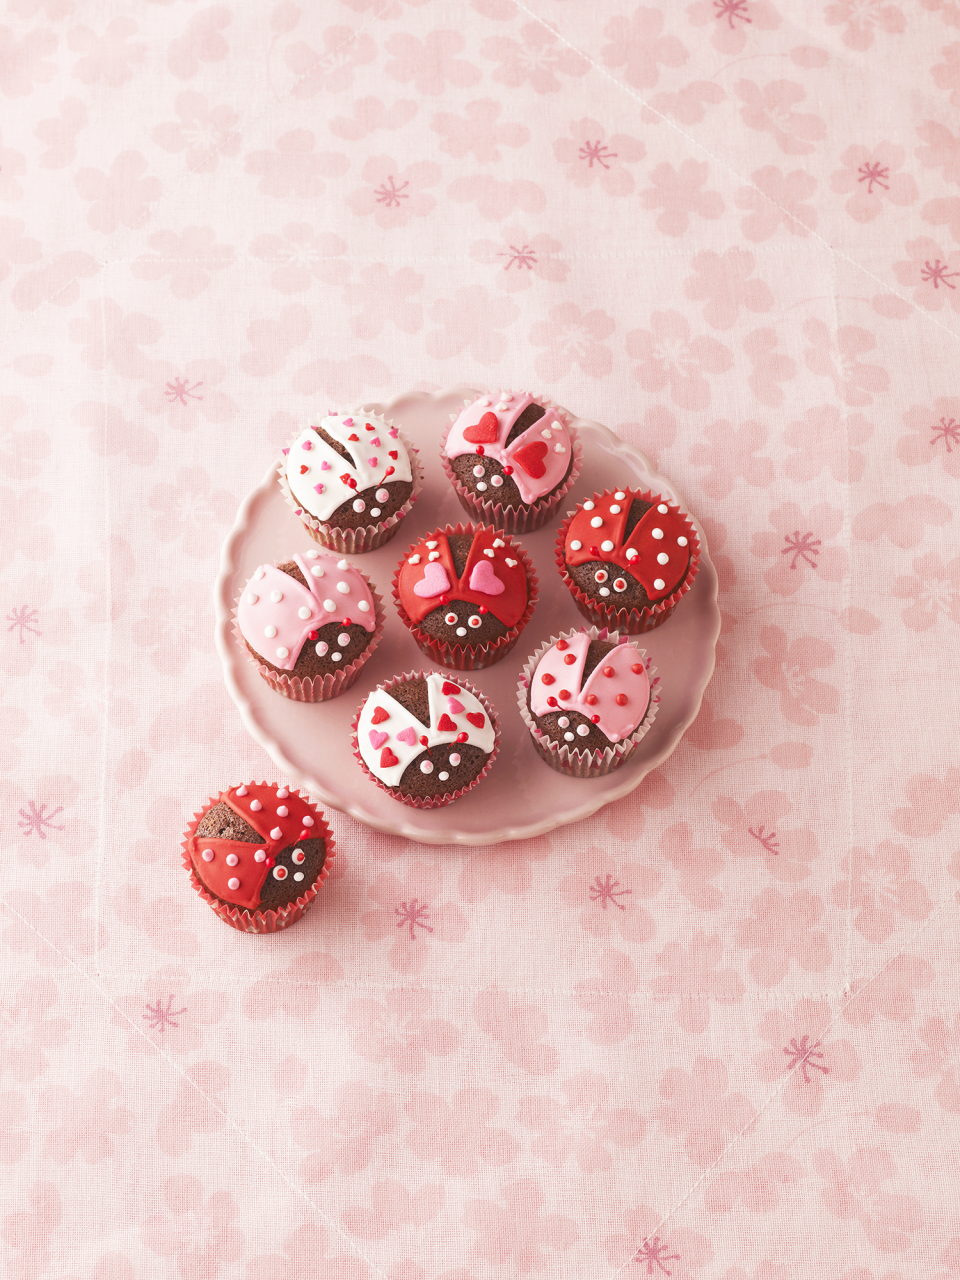 """<p>There's no sweeter holiday than Valentine's Day. Beyond the heartfelt love notes and sentimental gifts, it's an occasion packed with literal sweetness, all thanks to <a href=""""https://www.goodhousekeeping.com/holidays/valentines-day-ideas/g1409/best-valentines-day-chocolates/"""" rel=""""nofollow noopener"""" target=""""_blank"""" data-ylk=""""slk:boxes of chocolates"""" class=""""link rapid-noclick-resp"""">boxes of chocolates</a>,<a href=""""https://www.goodhousekeeping.com/food-recipes/dessert/a34865114/heart-shaped-cake-recipe/"""" rel=""""nofollow noopener"""" target=""""_blank"""" data-ylk=""""slk:heart-shaped cakes"""" class=""""link rapid-noclick-resp""""> heart-shaped cakes</a>, or a medley of red and pink candies. But if you're on the hook to whip up a batch of festive baked goods for your kid's Valentine's Day party at school or simply in need of an easy, edible gift for your loved ones, try your hand at one of these Valentine's Day cupcakes this year. Browse through these Cupid-approved <a href=""""https://www.goodhousekeeping.com/food-recipes/dessert/g2411/cupcake-ideas/"""" rel=""""nofollow noopener"""" target=""""_blank"""" data-ylk=""""slk:cupcake recipes"""" class=""""link rapid-noclick-resp"""">cupcake recipes</a> to find a delectable flavor that'll satisfy your valentine's tastebuds, whether they have their heart set on chocolate, strawberries, or a blend of the two. But if you're looking to get crafty in the kitchen, opt for one of the more extravagant decoration ideas, like chocolate cupcakes that can be transformed into adorable lovebugs with red, pink, and white frosting. </p><p>Cupcakes may be the centerpiece on your dessert table, but make sure you round out your holiday spread with other <a href=""""https://www.goodhousekeeping.com/holidays/valentines-day-ideas/g3180/valentines-desserts/"""" rel=""""nofollow noopener"""" target=""""_blank"""" data-ylk=""""slk:Valentine's Day desserts"""" class=""""link rapid-noclick-resp"""">Valentine's Day desserts</a>, including brownies, cookies, and other <a href=""""https://www.goodhousekeeping.com/holidays/valentines"""